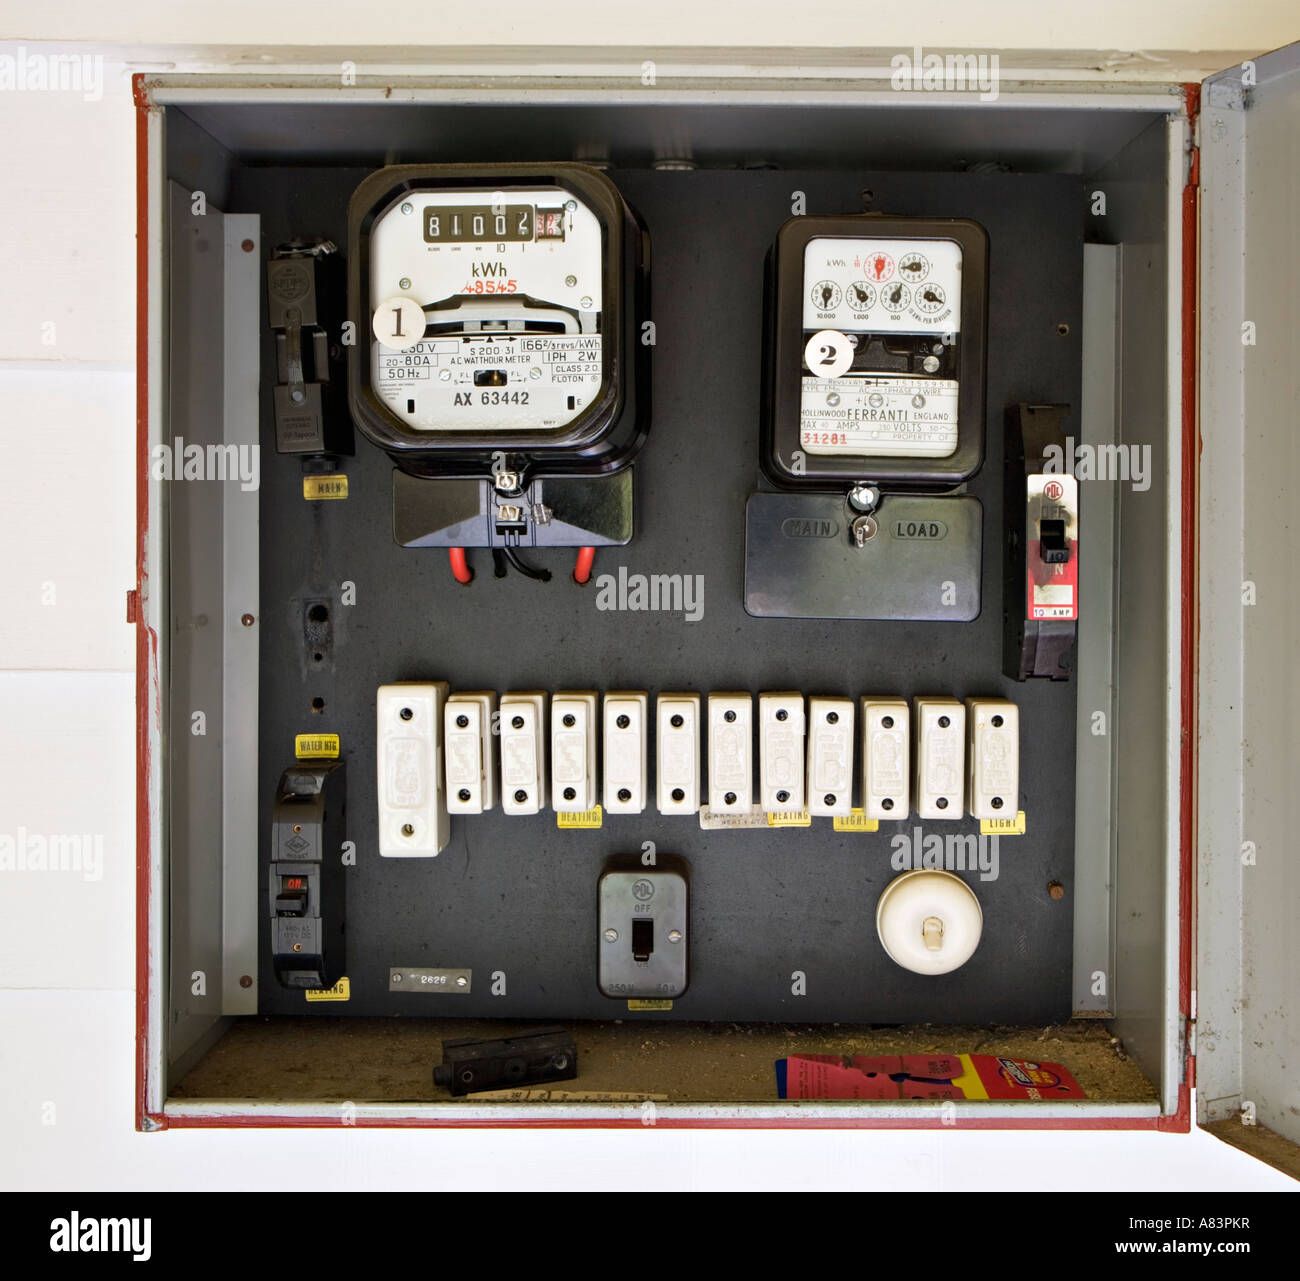 hight resolution of old bus fuse box electrical diagrams schematics 2005 mustang fuse box buss house fuse box